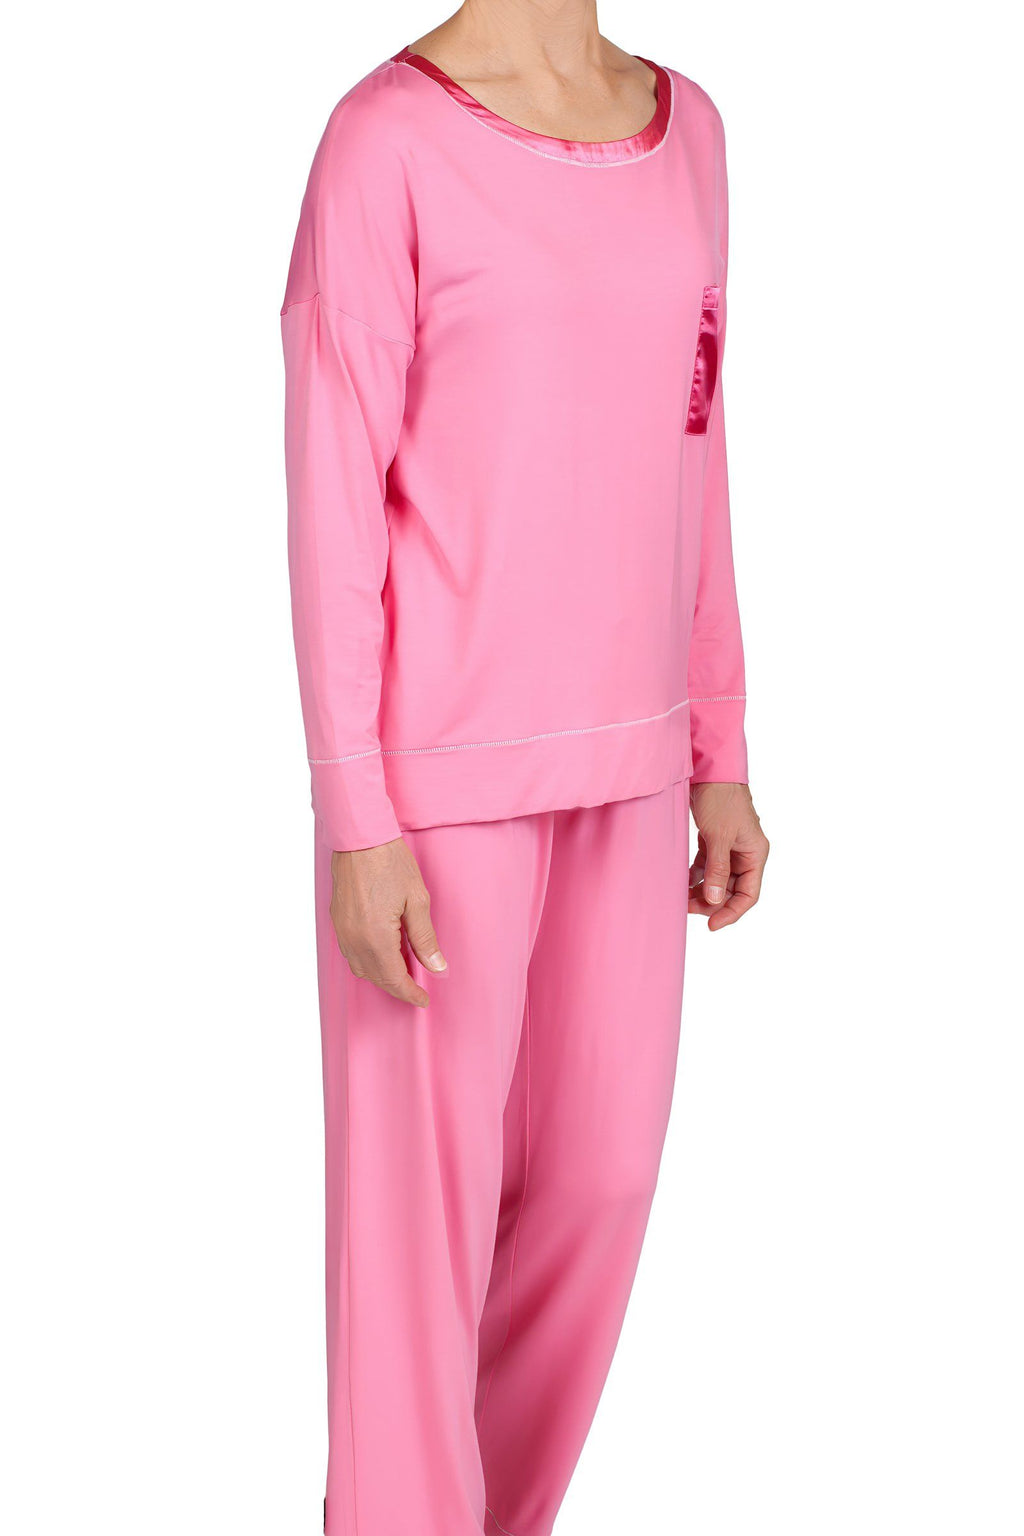 Madison Pajama - Cameo Rose Mystique Intimates